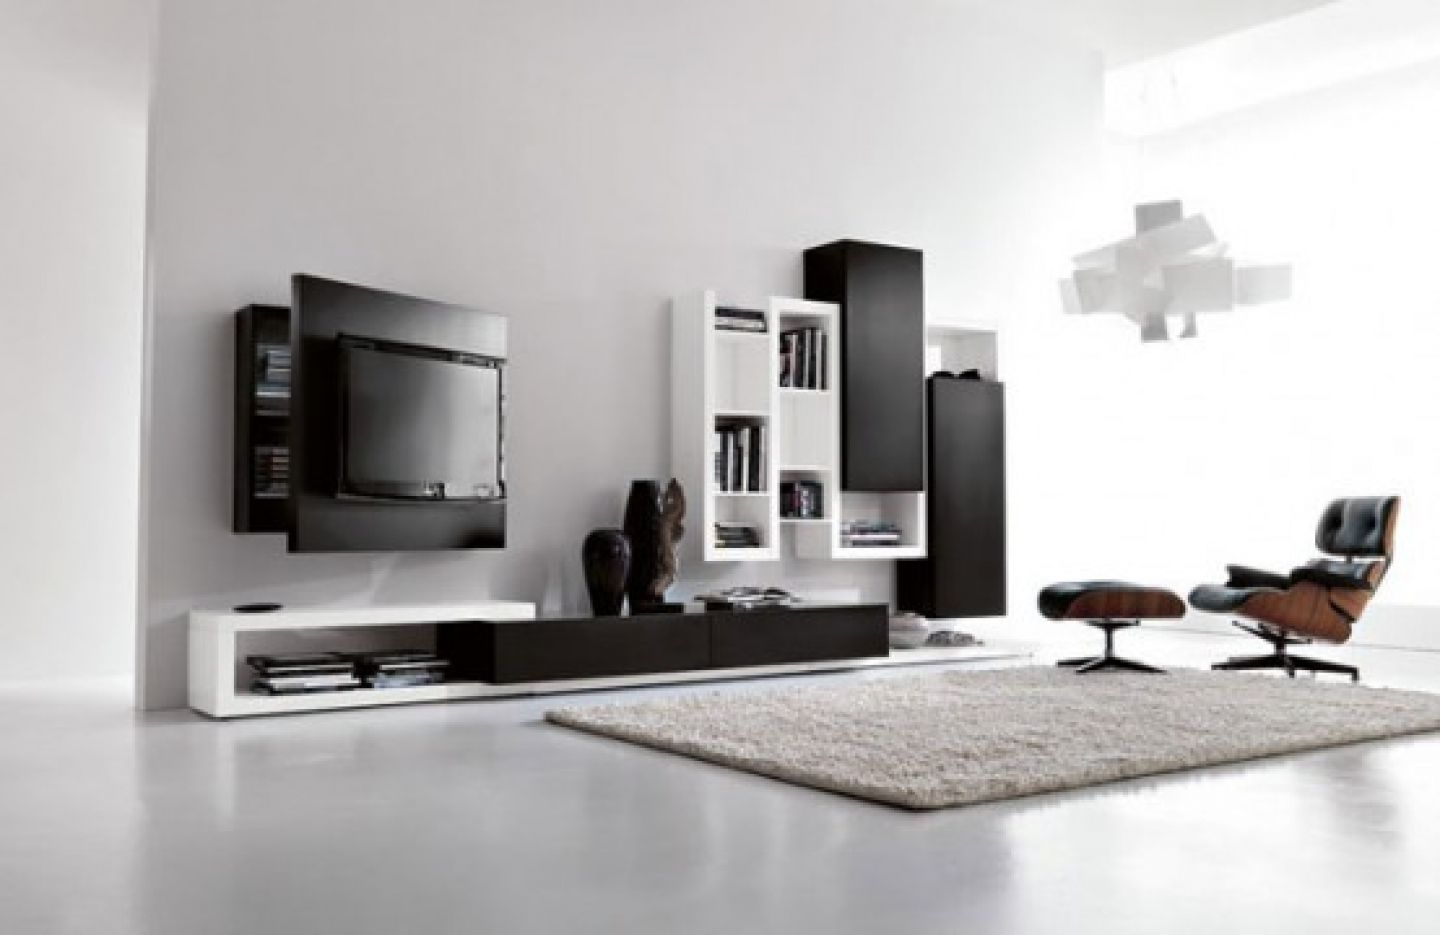 Wall Cabinets Living Room Furniture Living Room Luxurious White Design Black Wall Units Bookshelf Rug